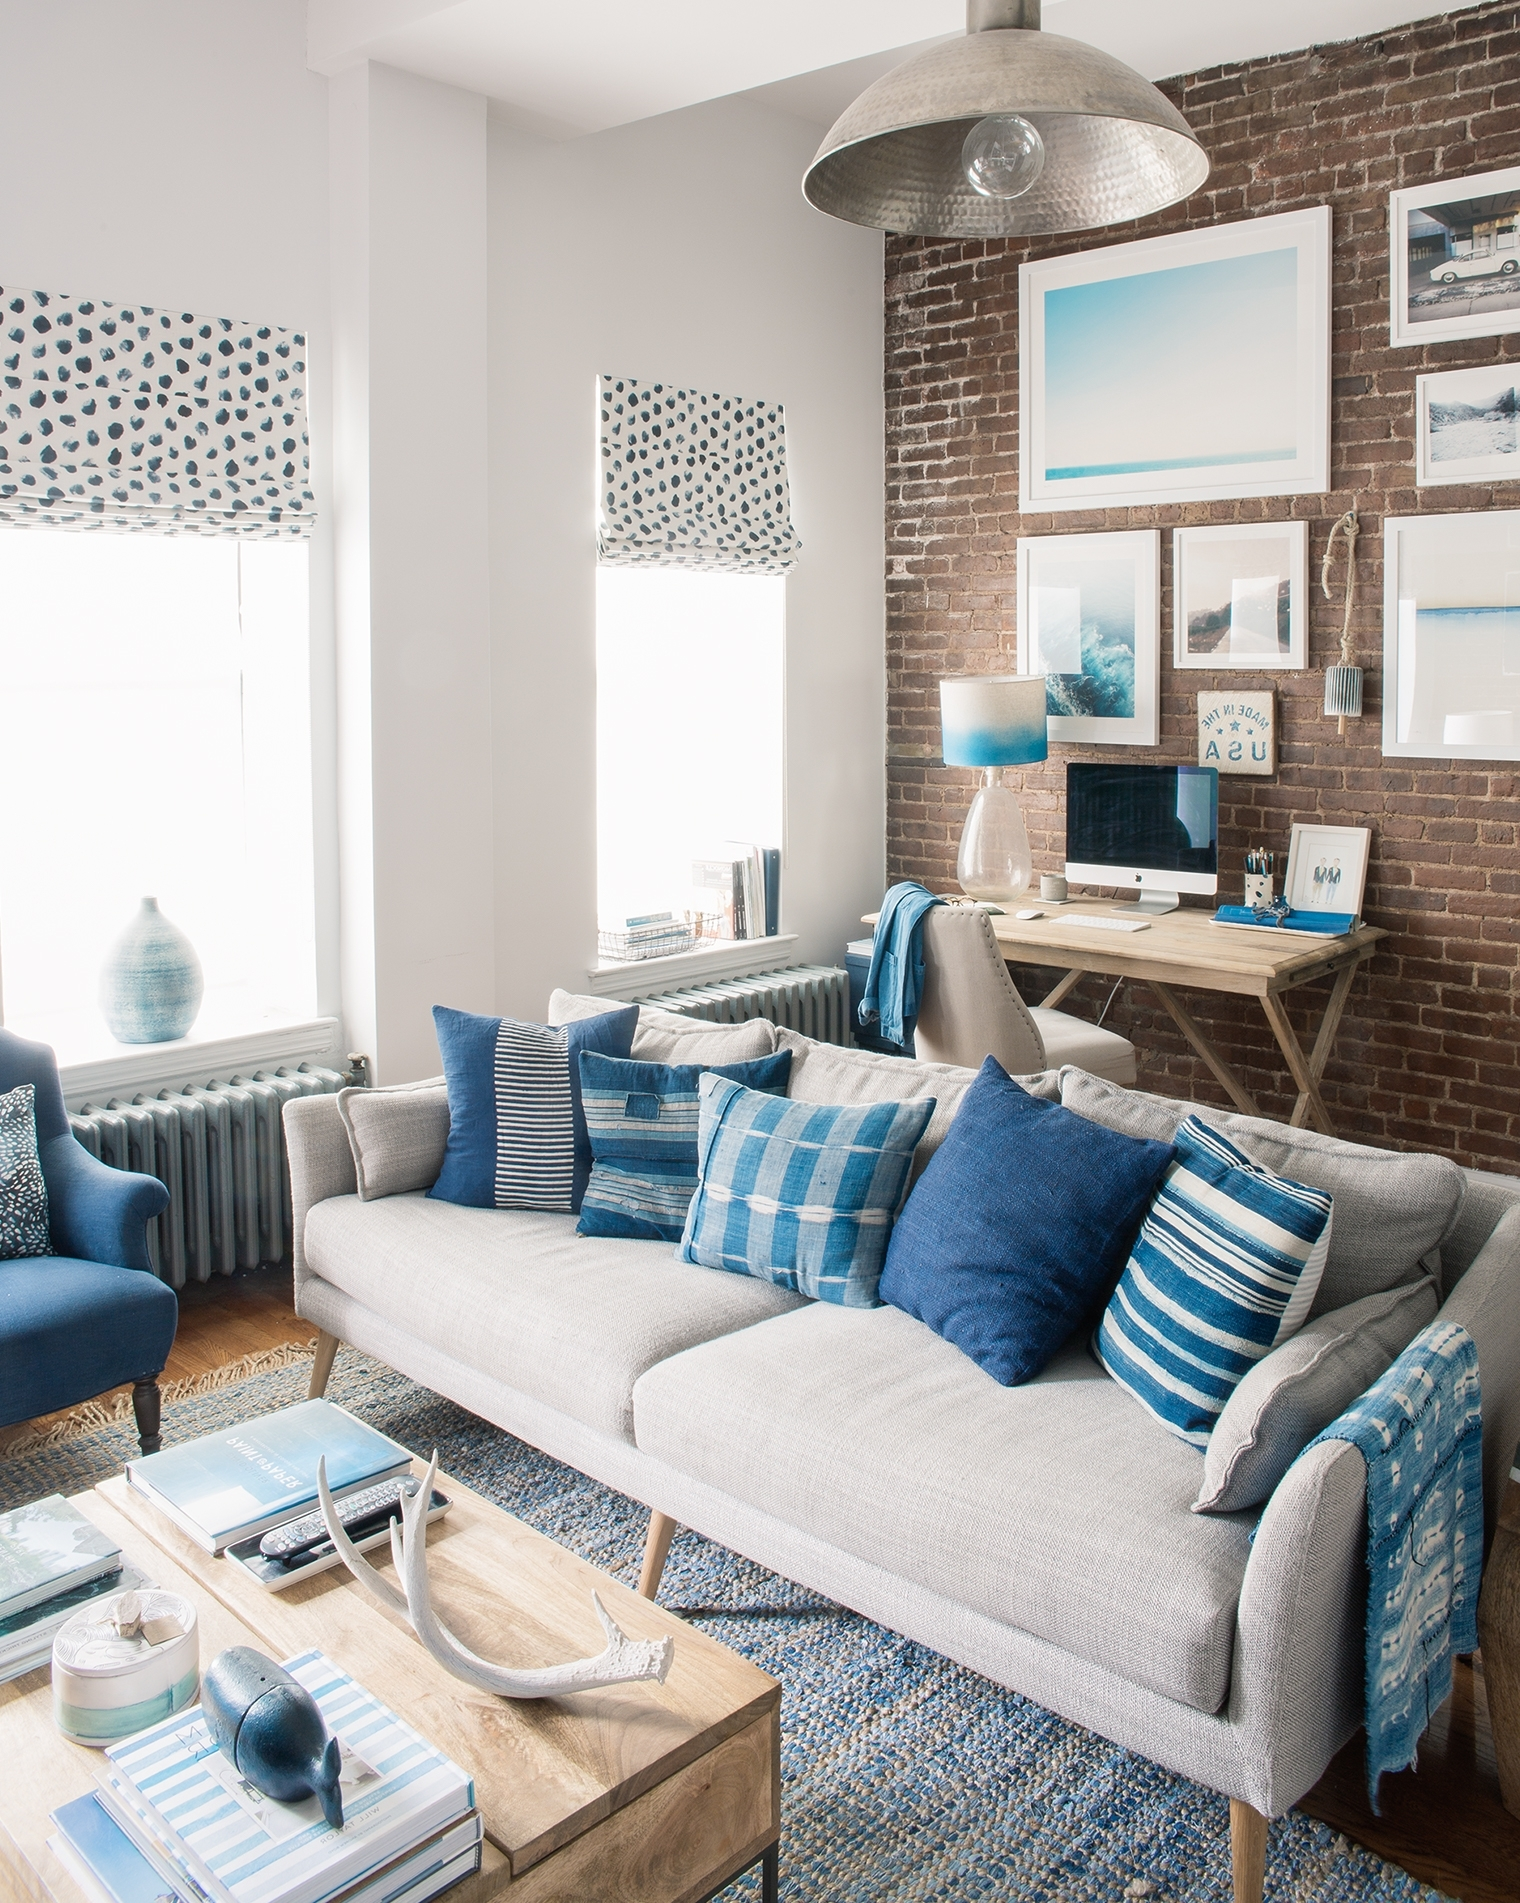 How To Decorate An Nyc Brownstone Apartment Bright Bazaar Brownstone Living Room Decorating